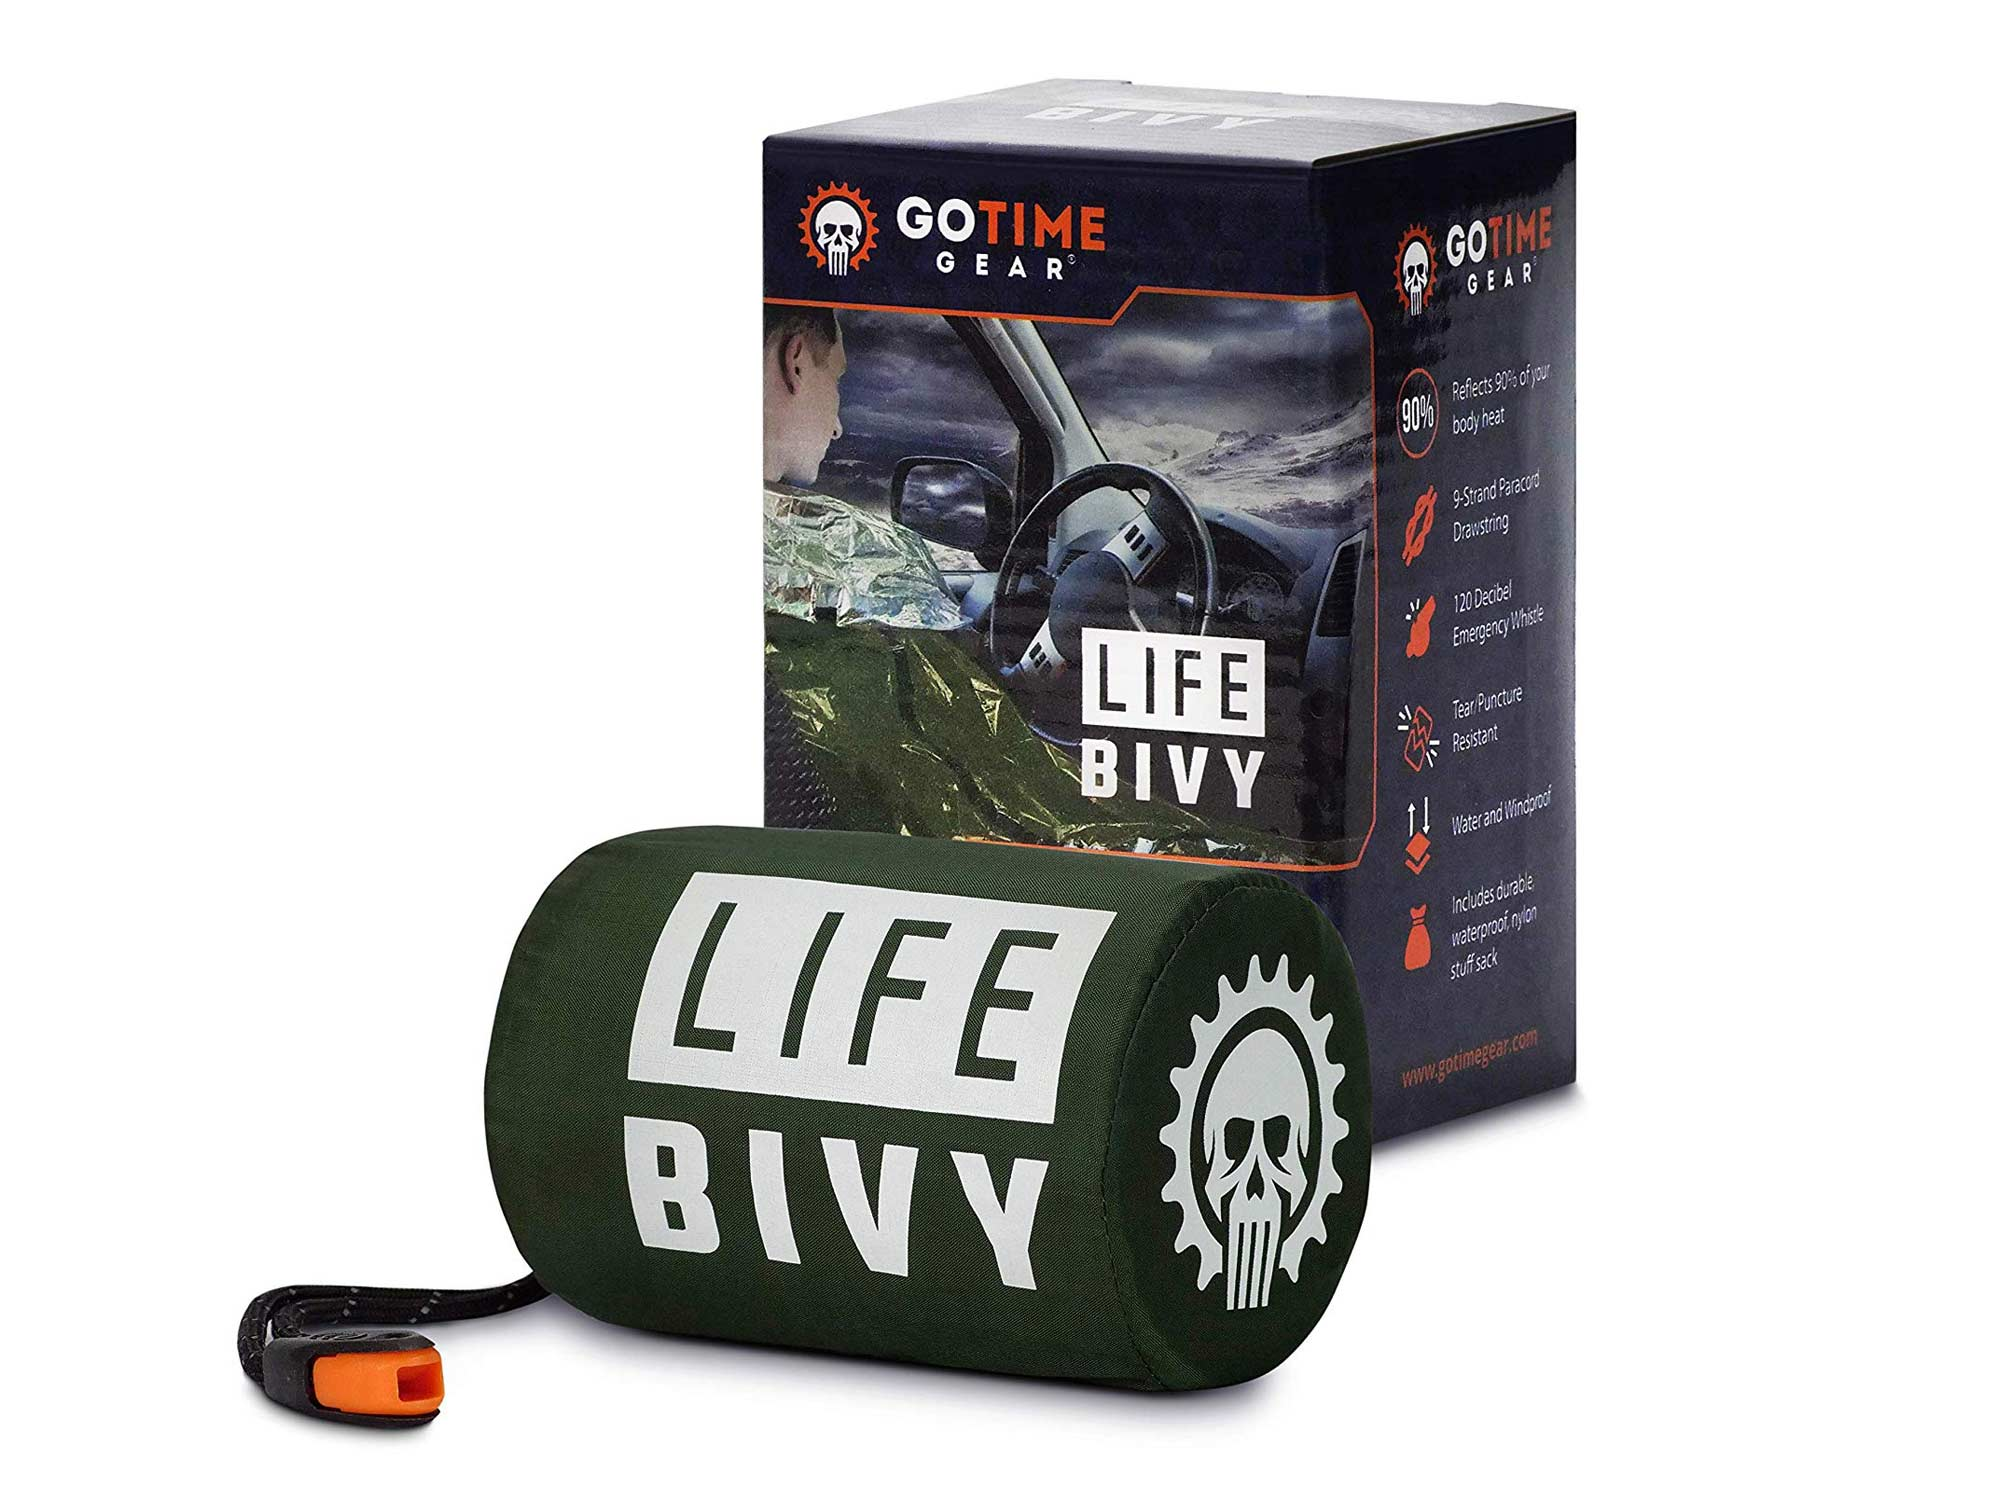 Bivy Emergency Sleeping Bag